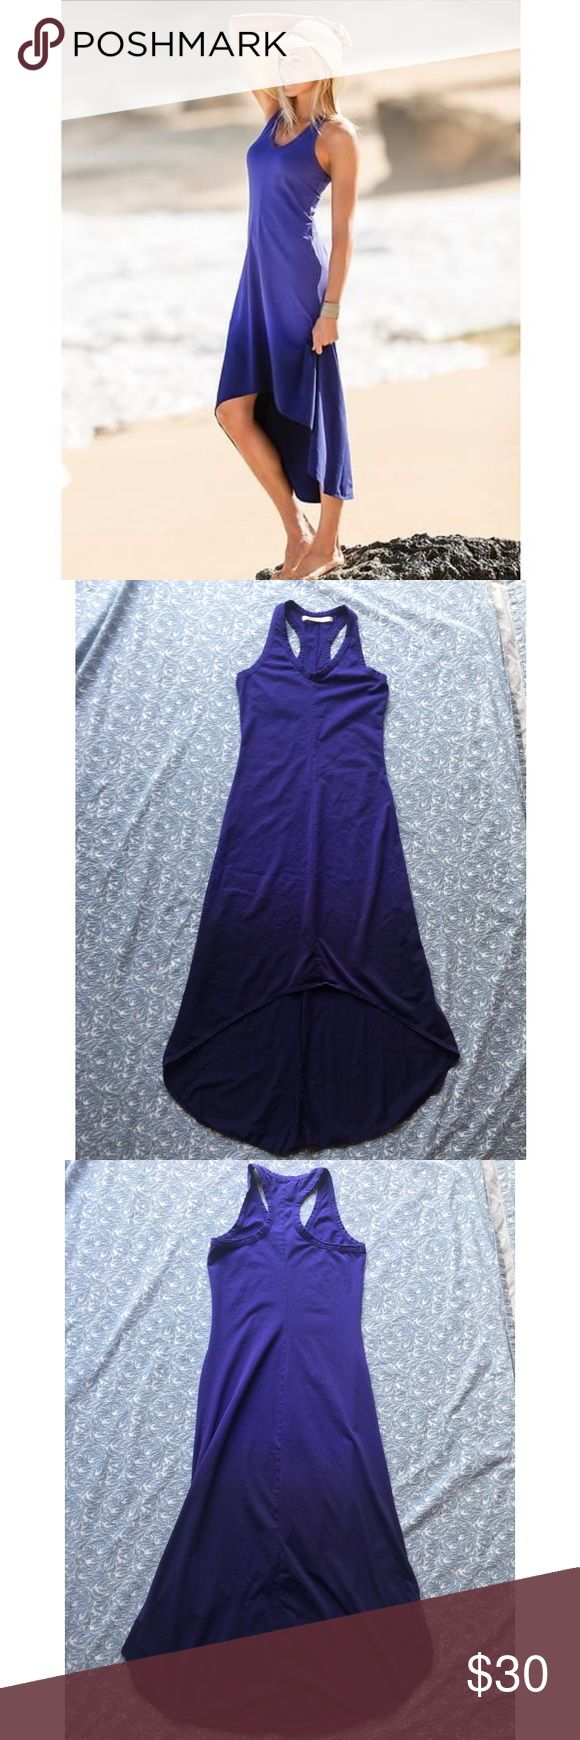 Athleta ombré high low dress Lightly worn and in great condition. Even stock photo doesn't do justice to how pretty the color of this dress is! Athleta Dresses Asymmetrical